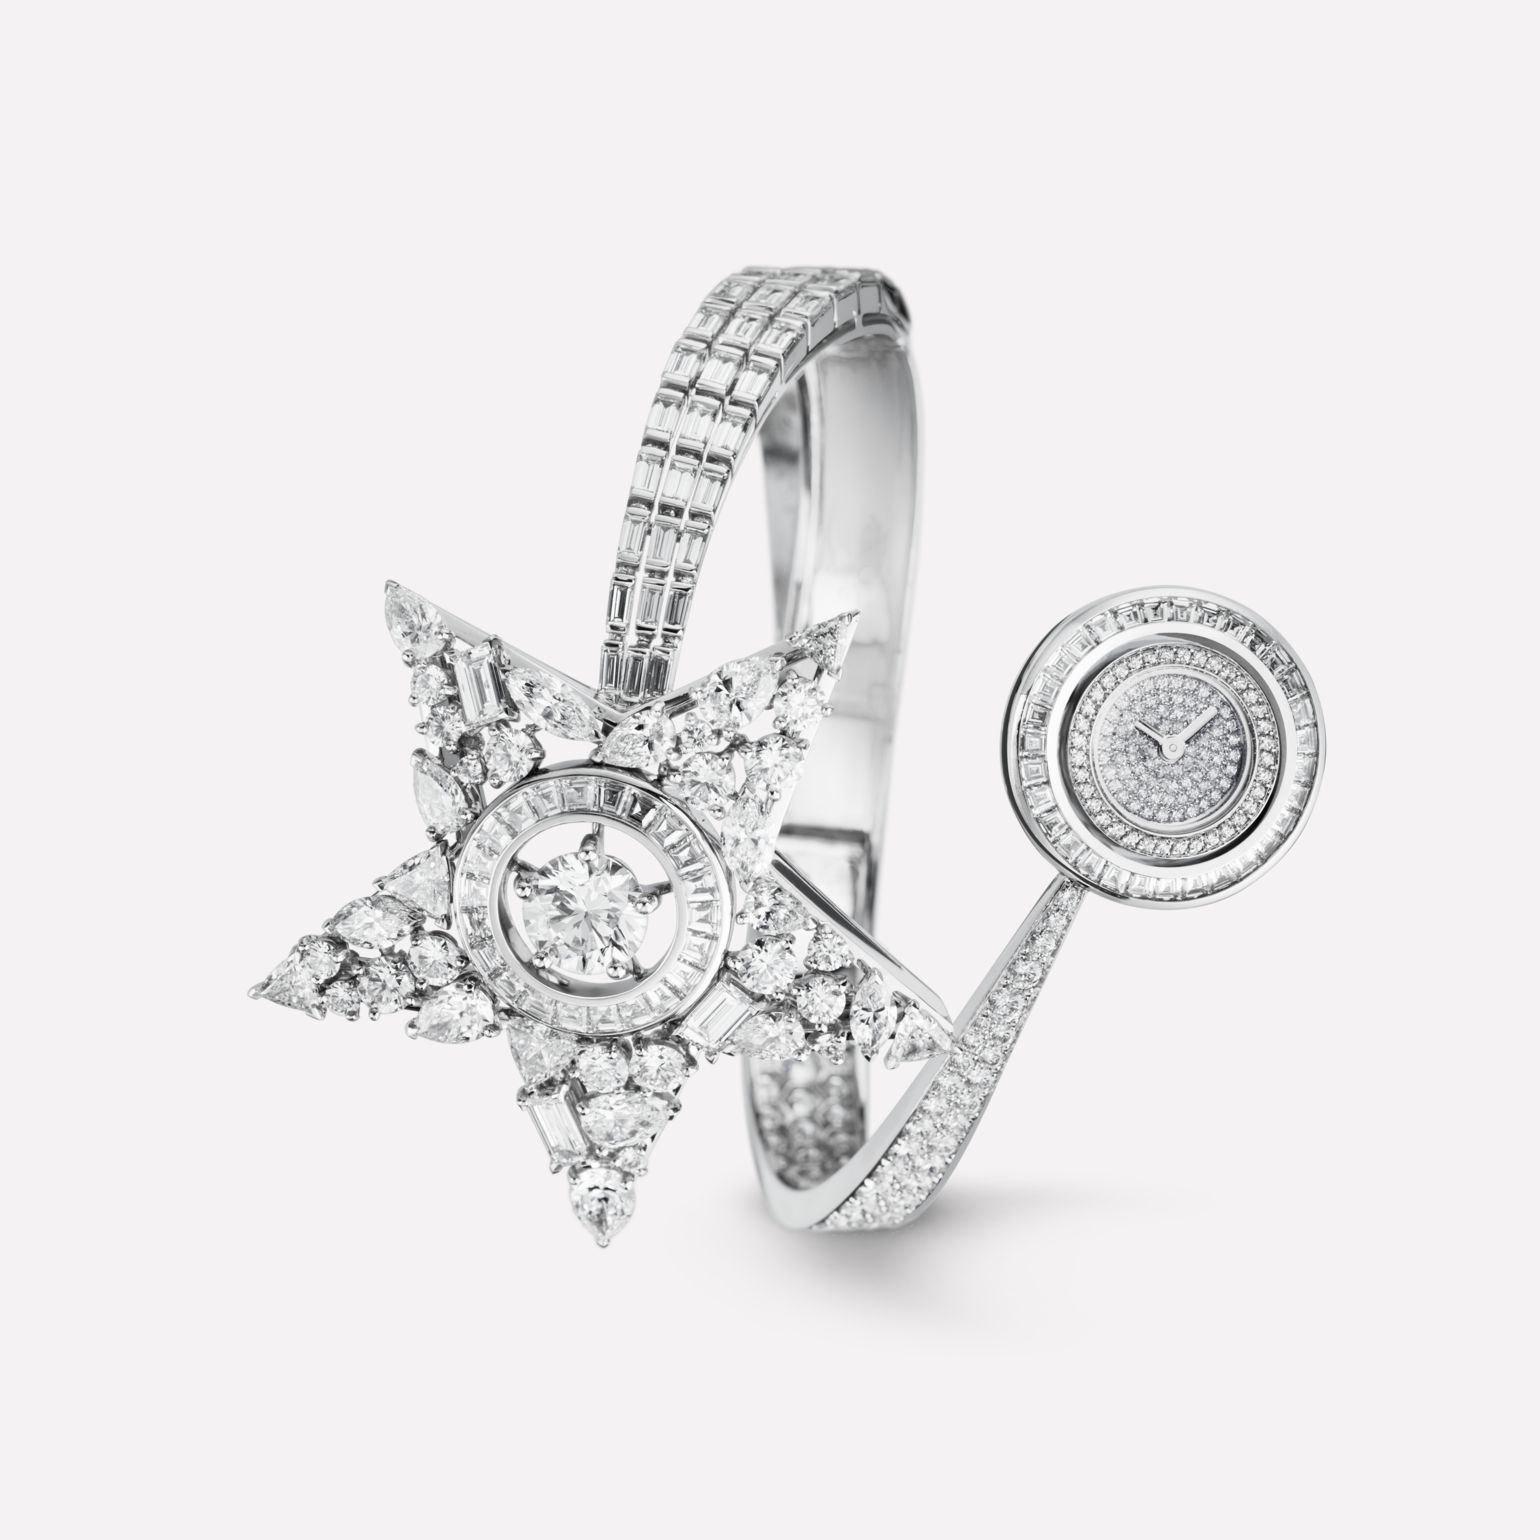 Comète Jewelry Watch Shooting star motif in 18K white gold with diamonds and center stone